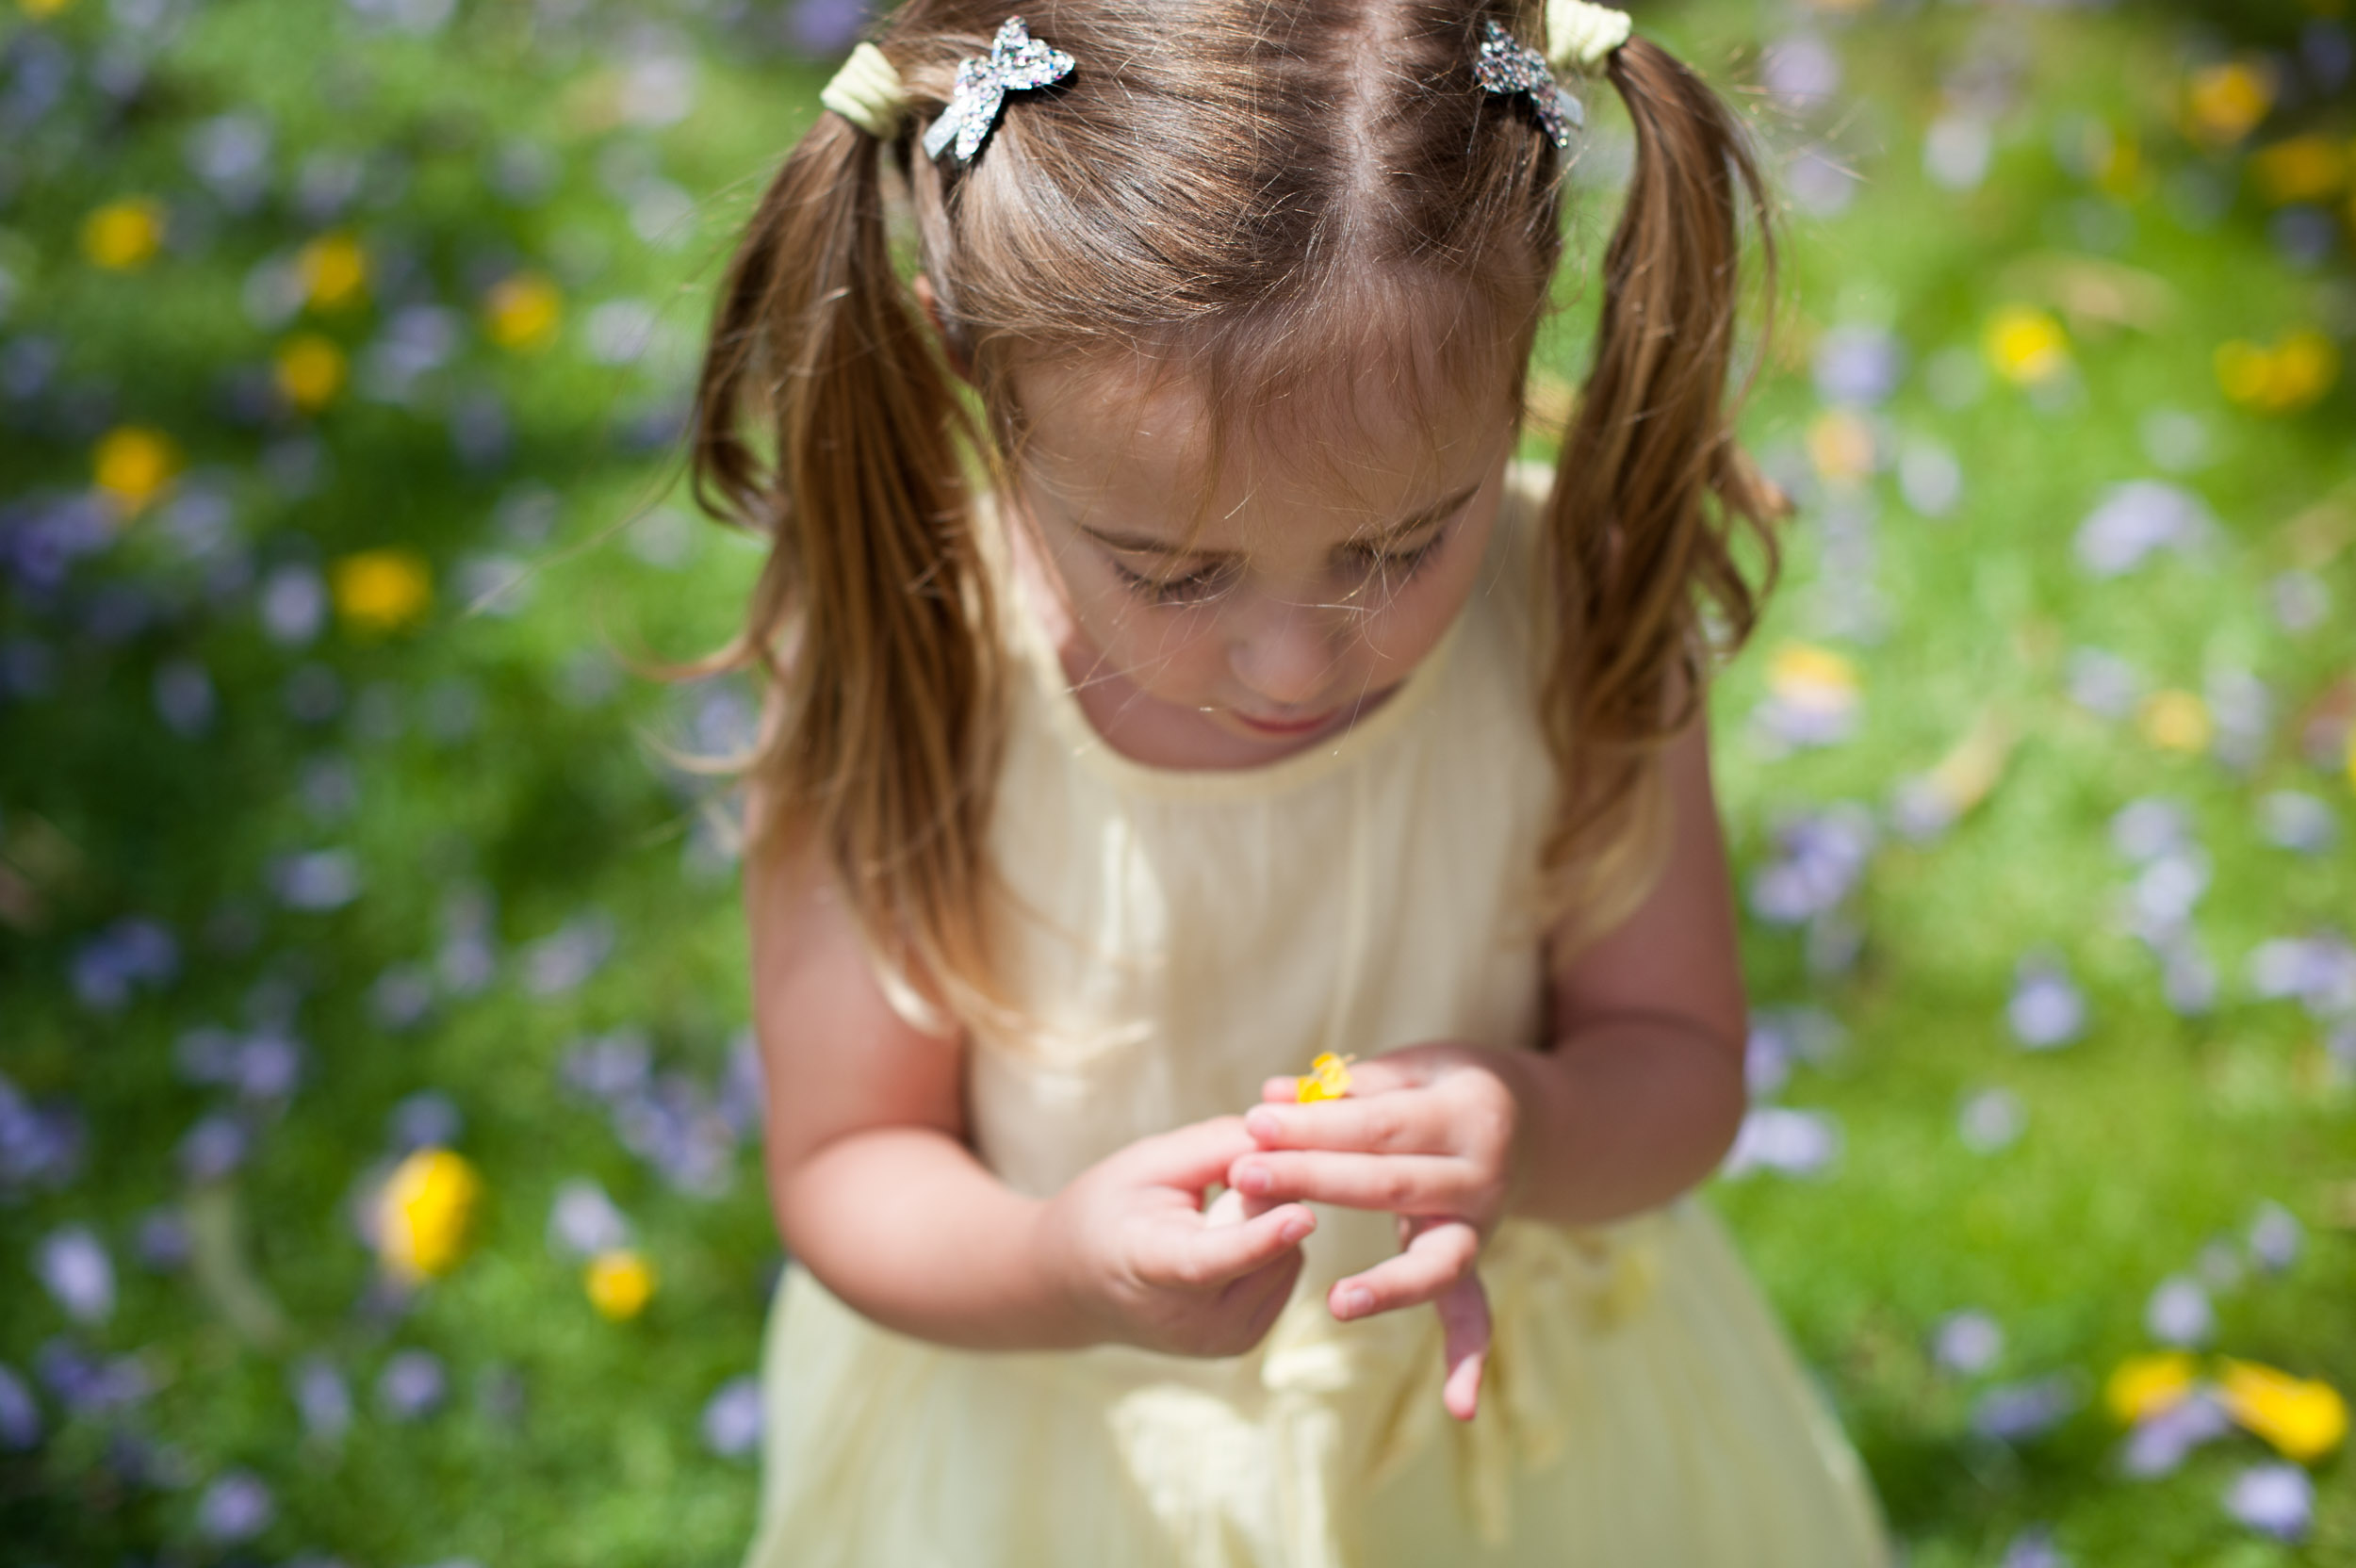 picking flowers in the garden